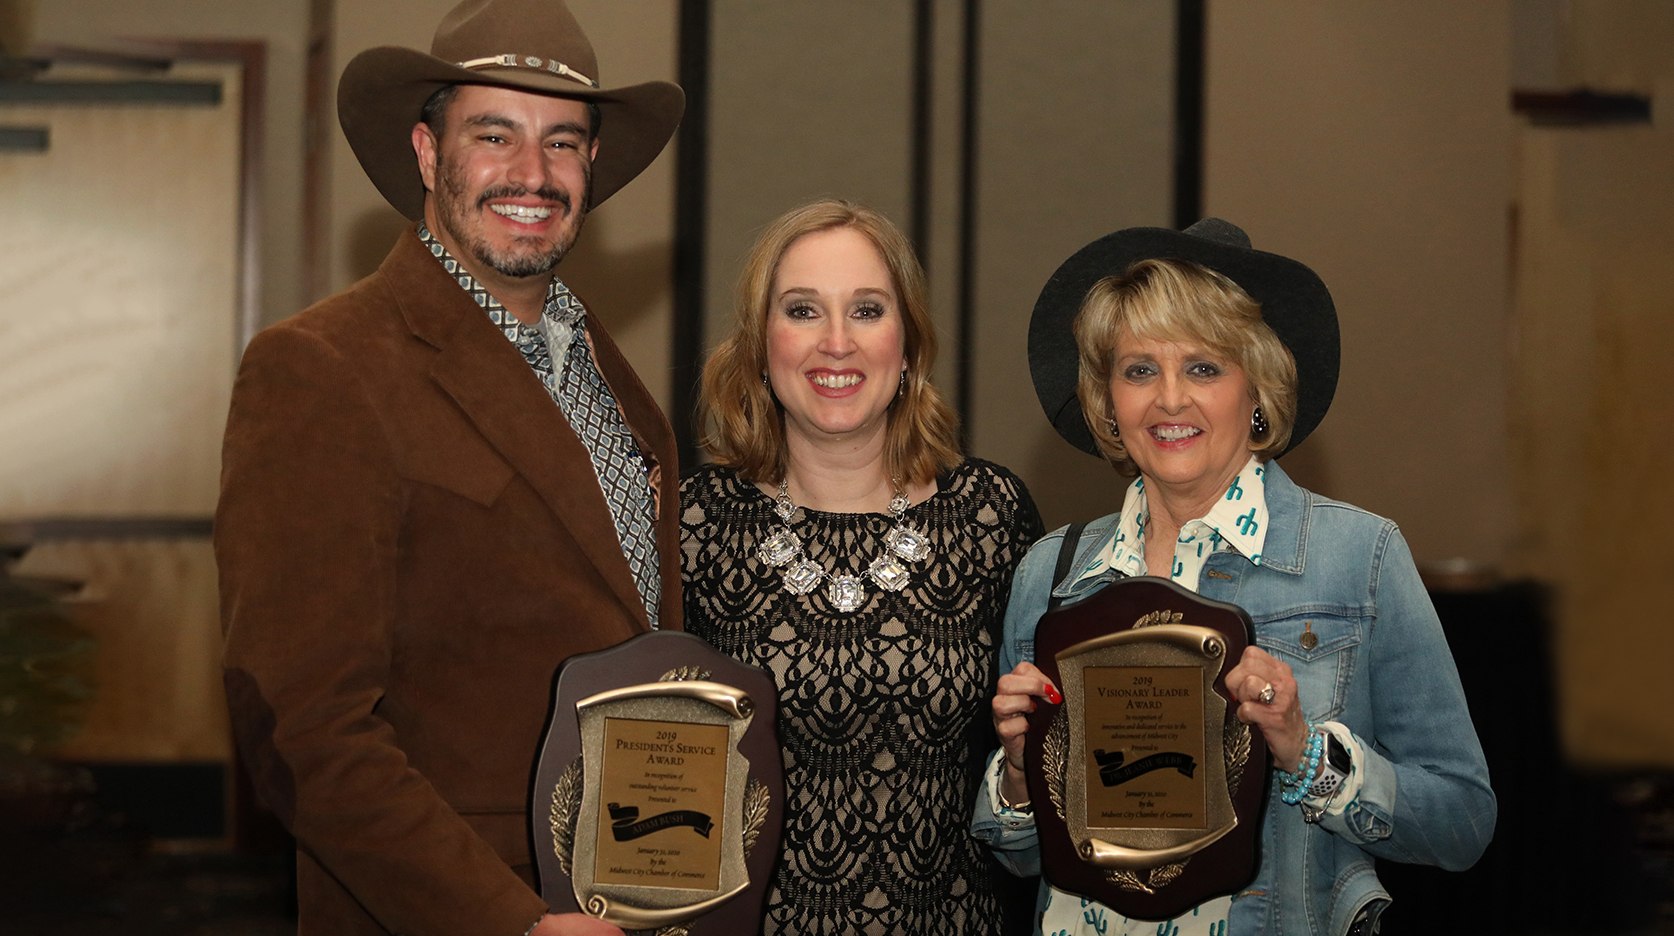 Pictured in the photo are Adam Bush, Christine Martin 2019 Midwest City Chamber President and President Webb.